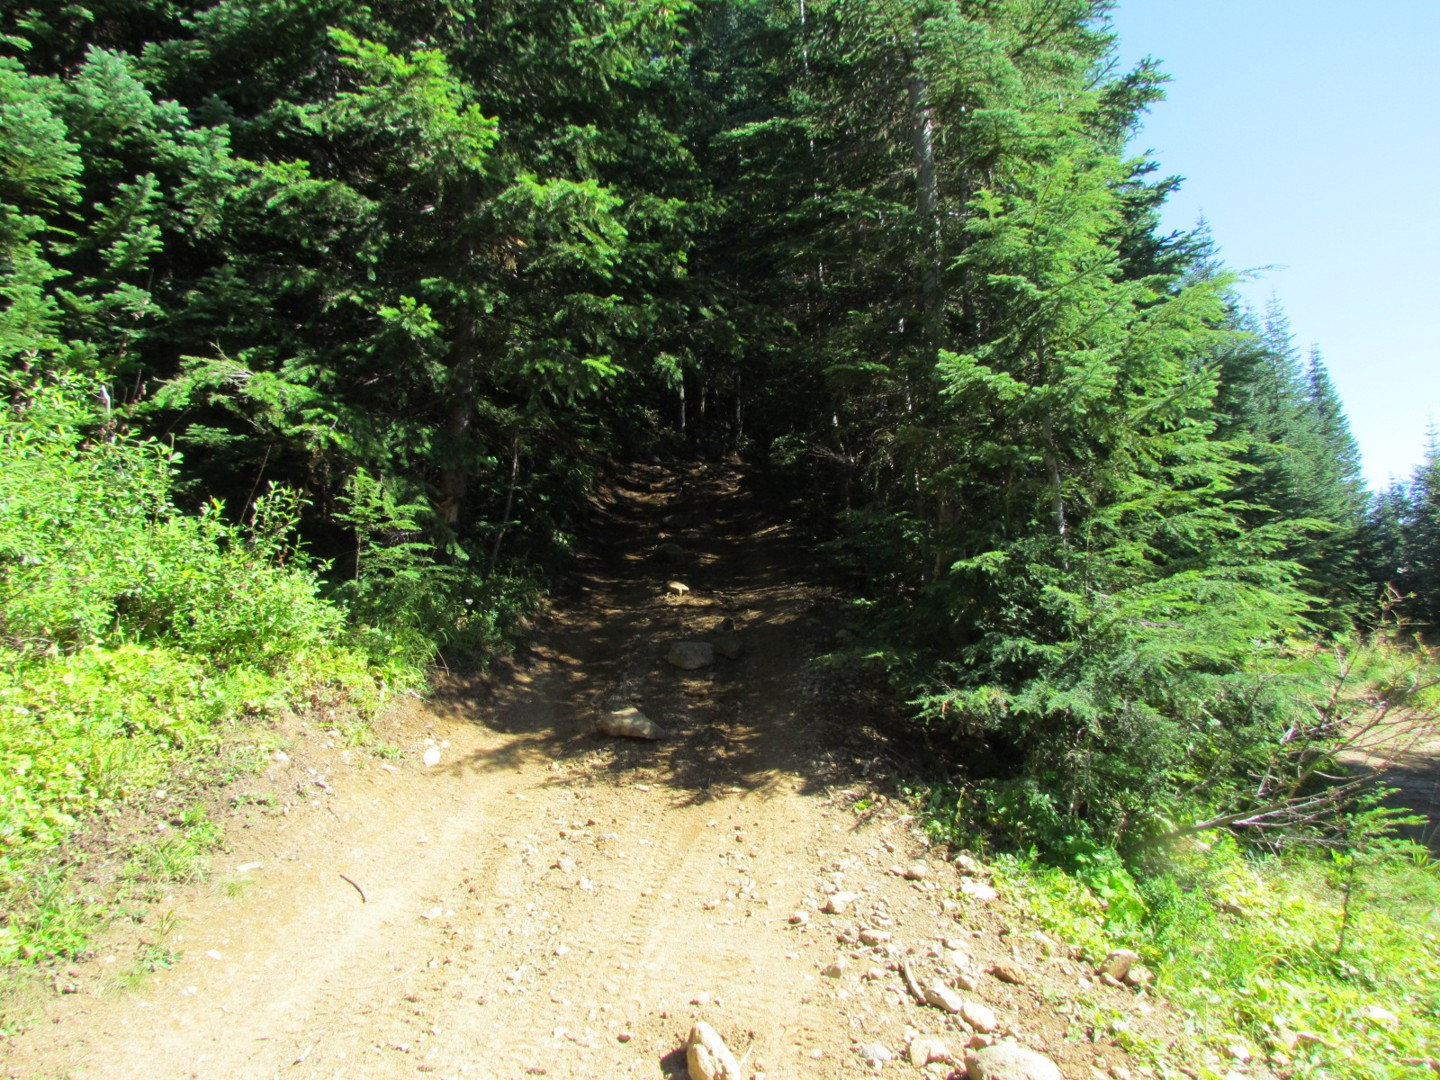 Evans Creek / Trail #519 - Waypoint 3: Intersection / Turn Right